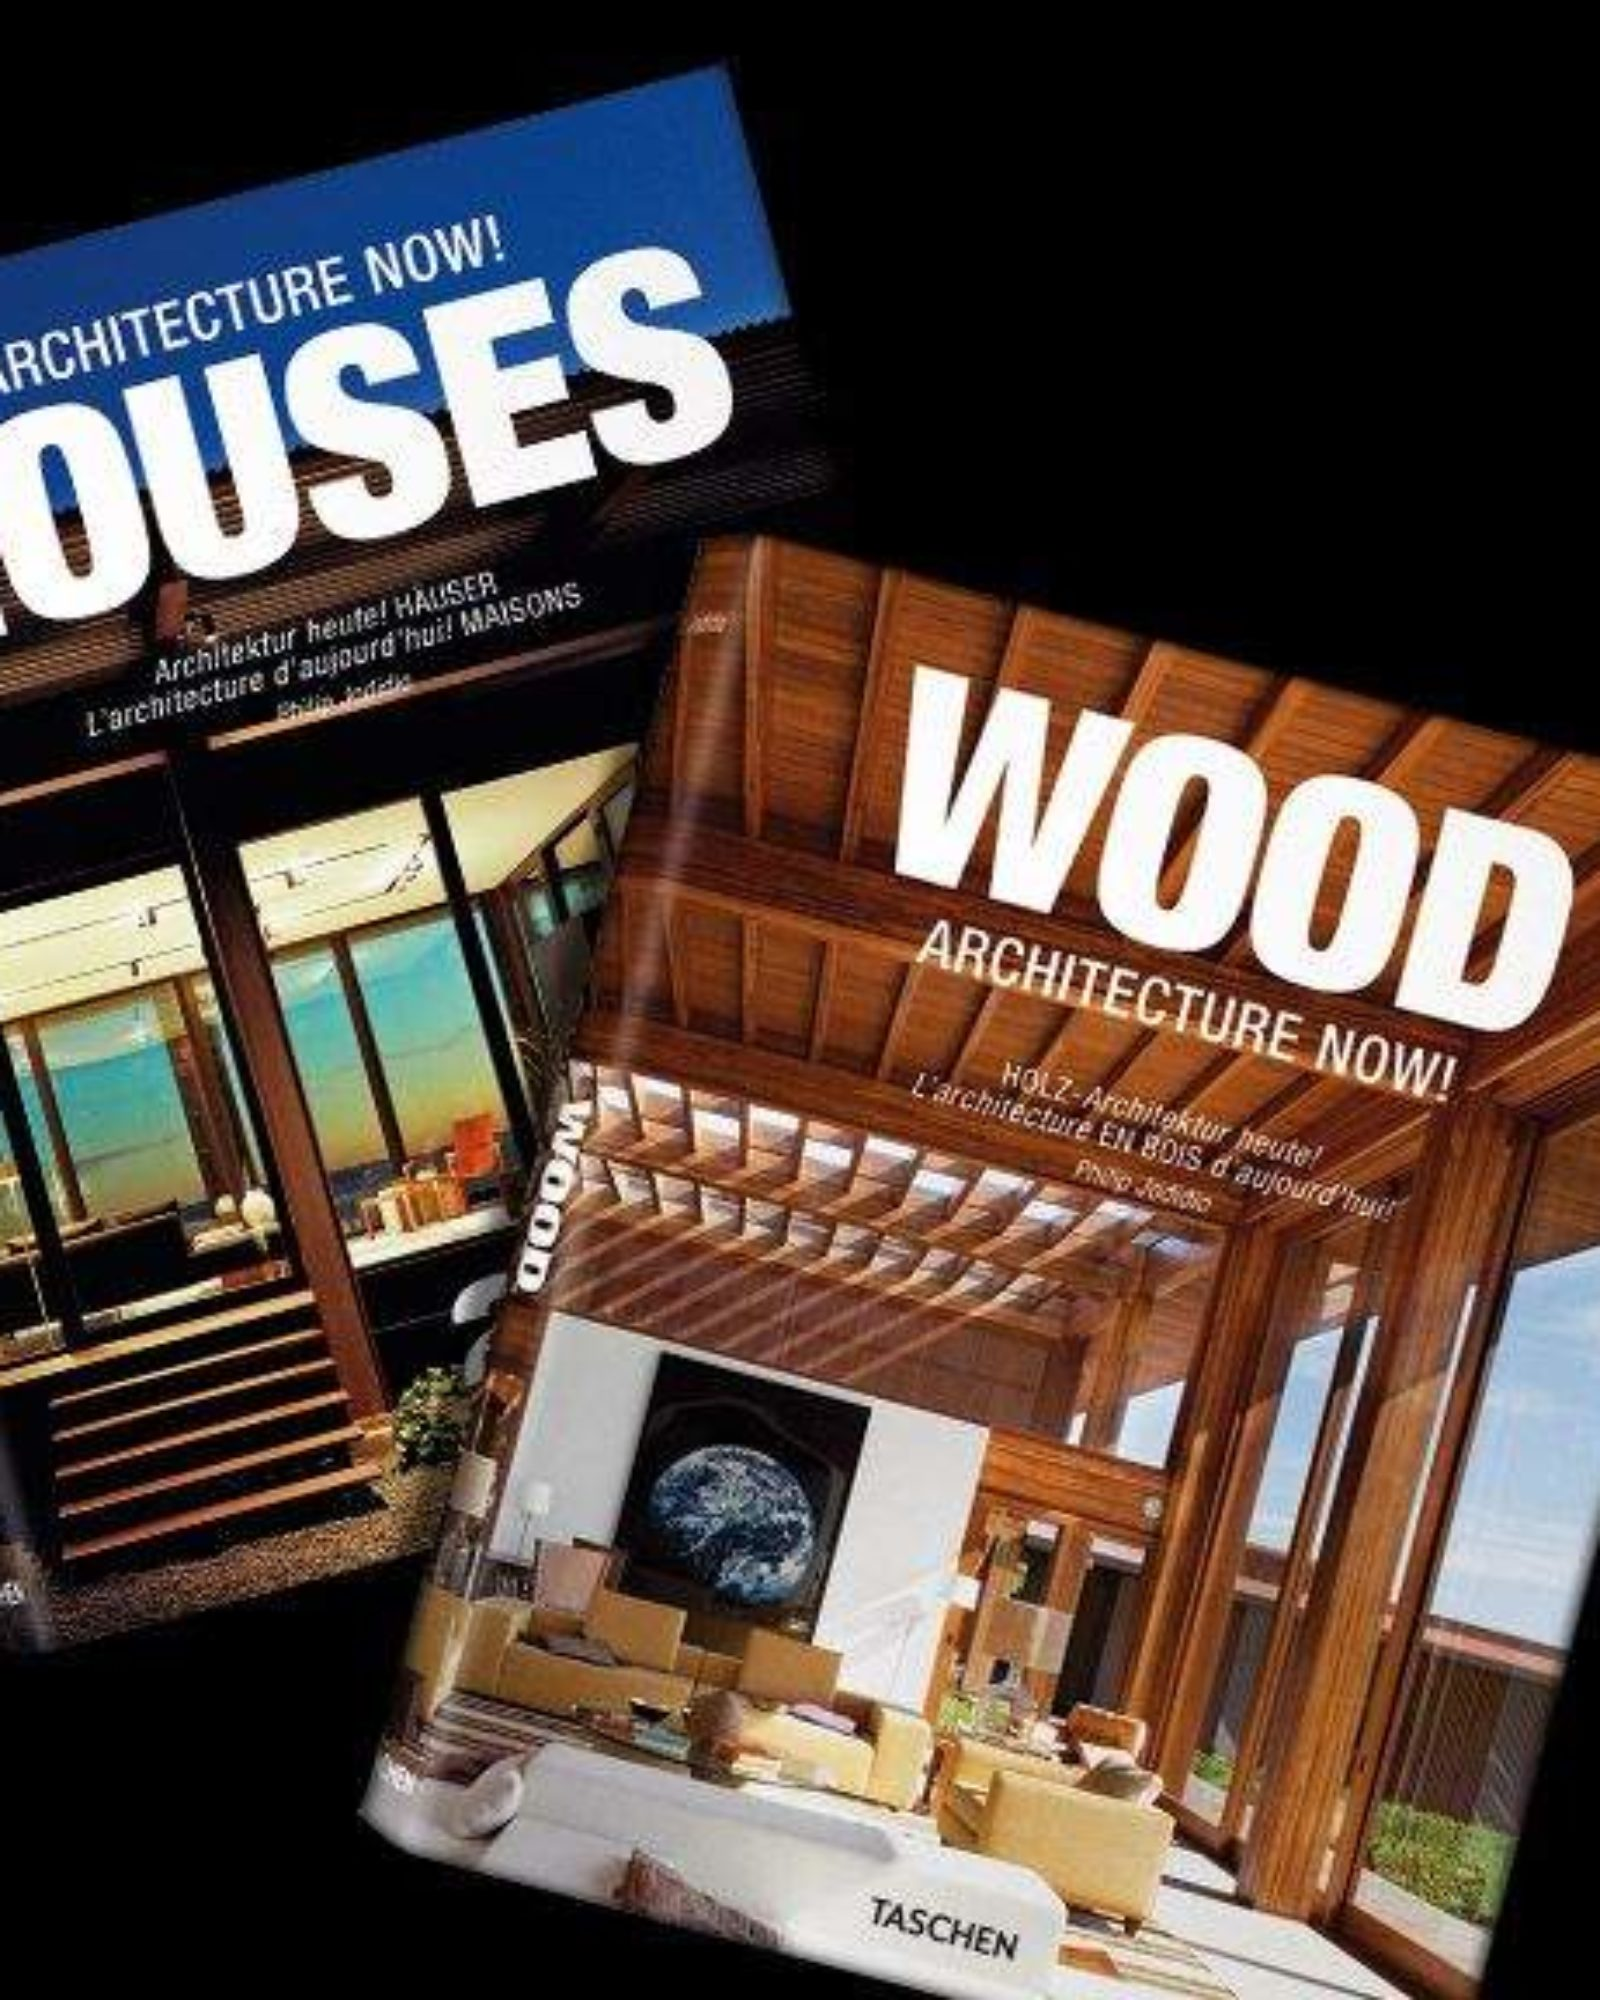 ARCHITECTURE NOW! - WOOD & HOUSES VOL.2